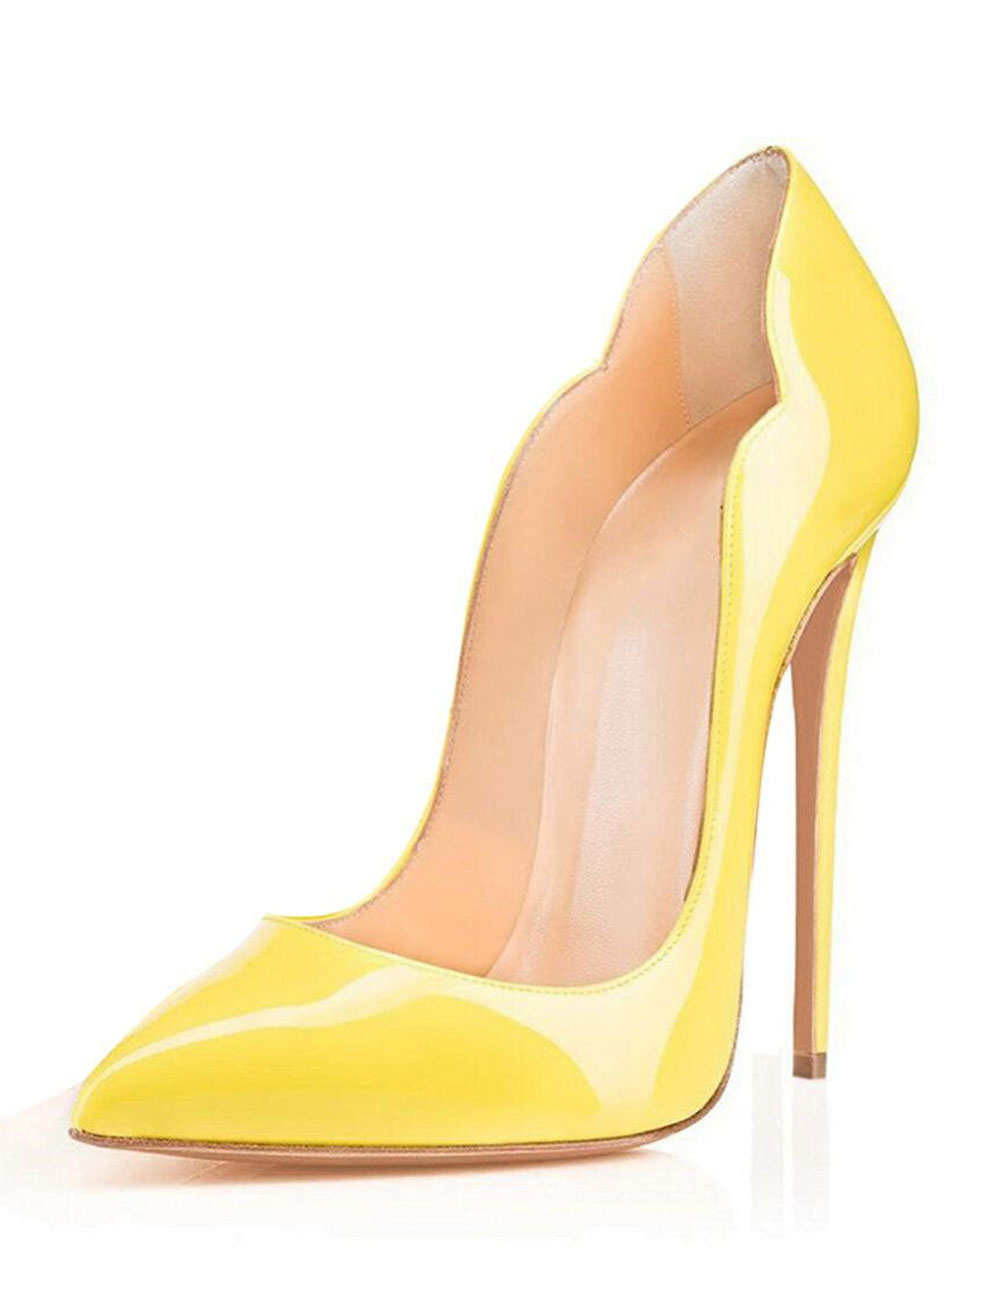 be0577232 Yellow High Heels 2019 Women Pointed Toe Patent PU Stiletto Sky High ...